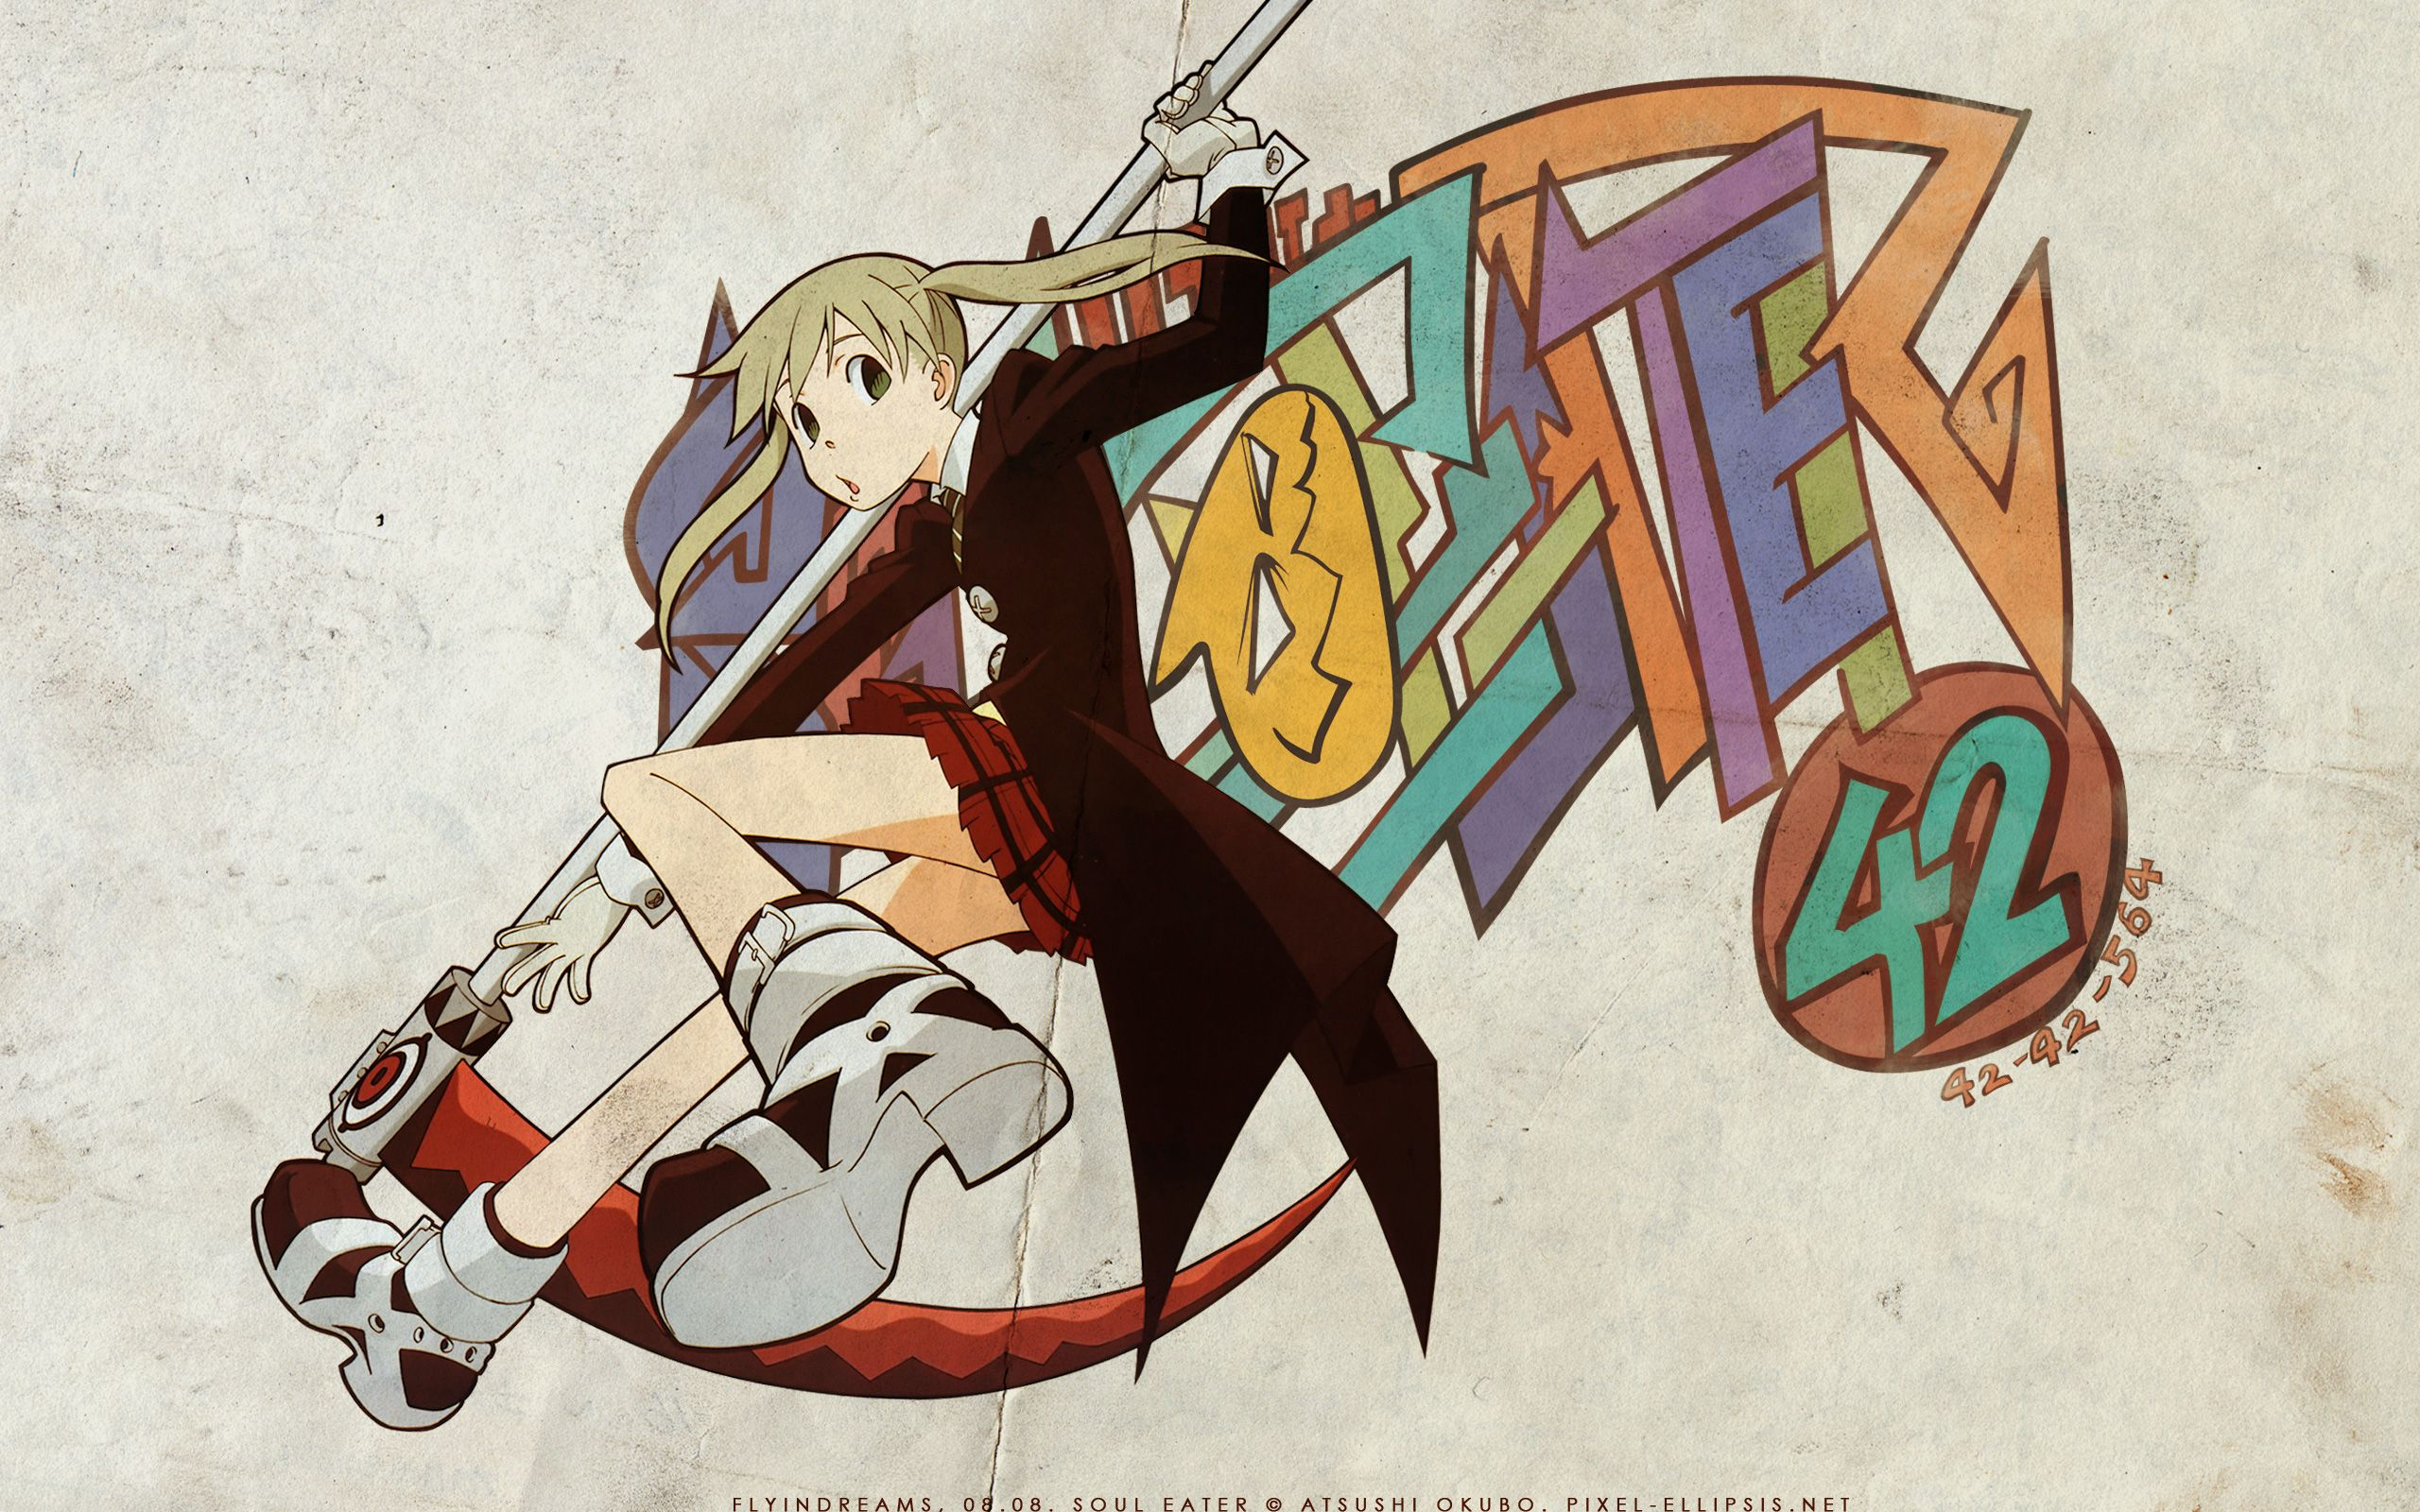 ragnarok-soul-eater-anime-hd-wallpaper